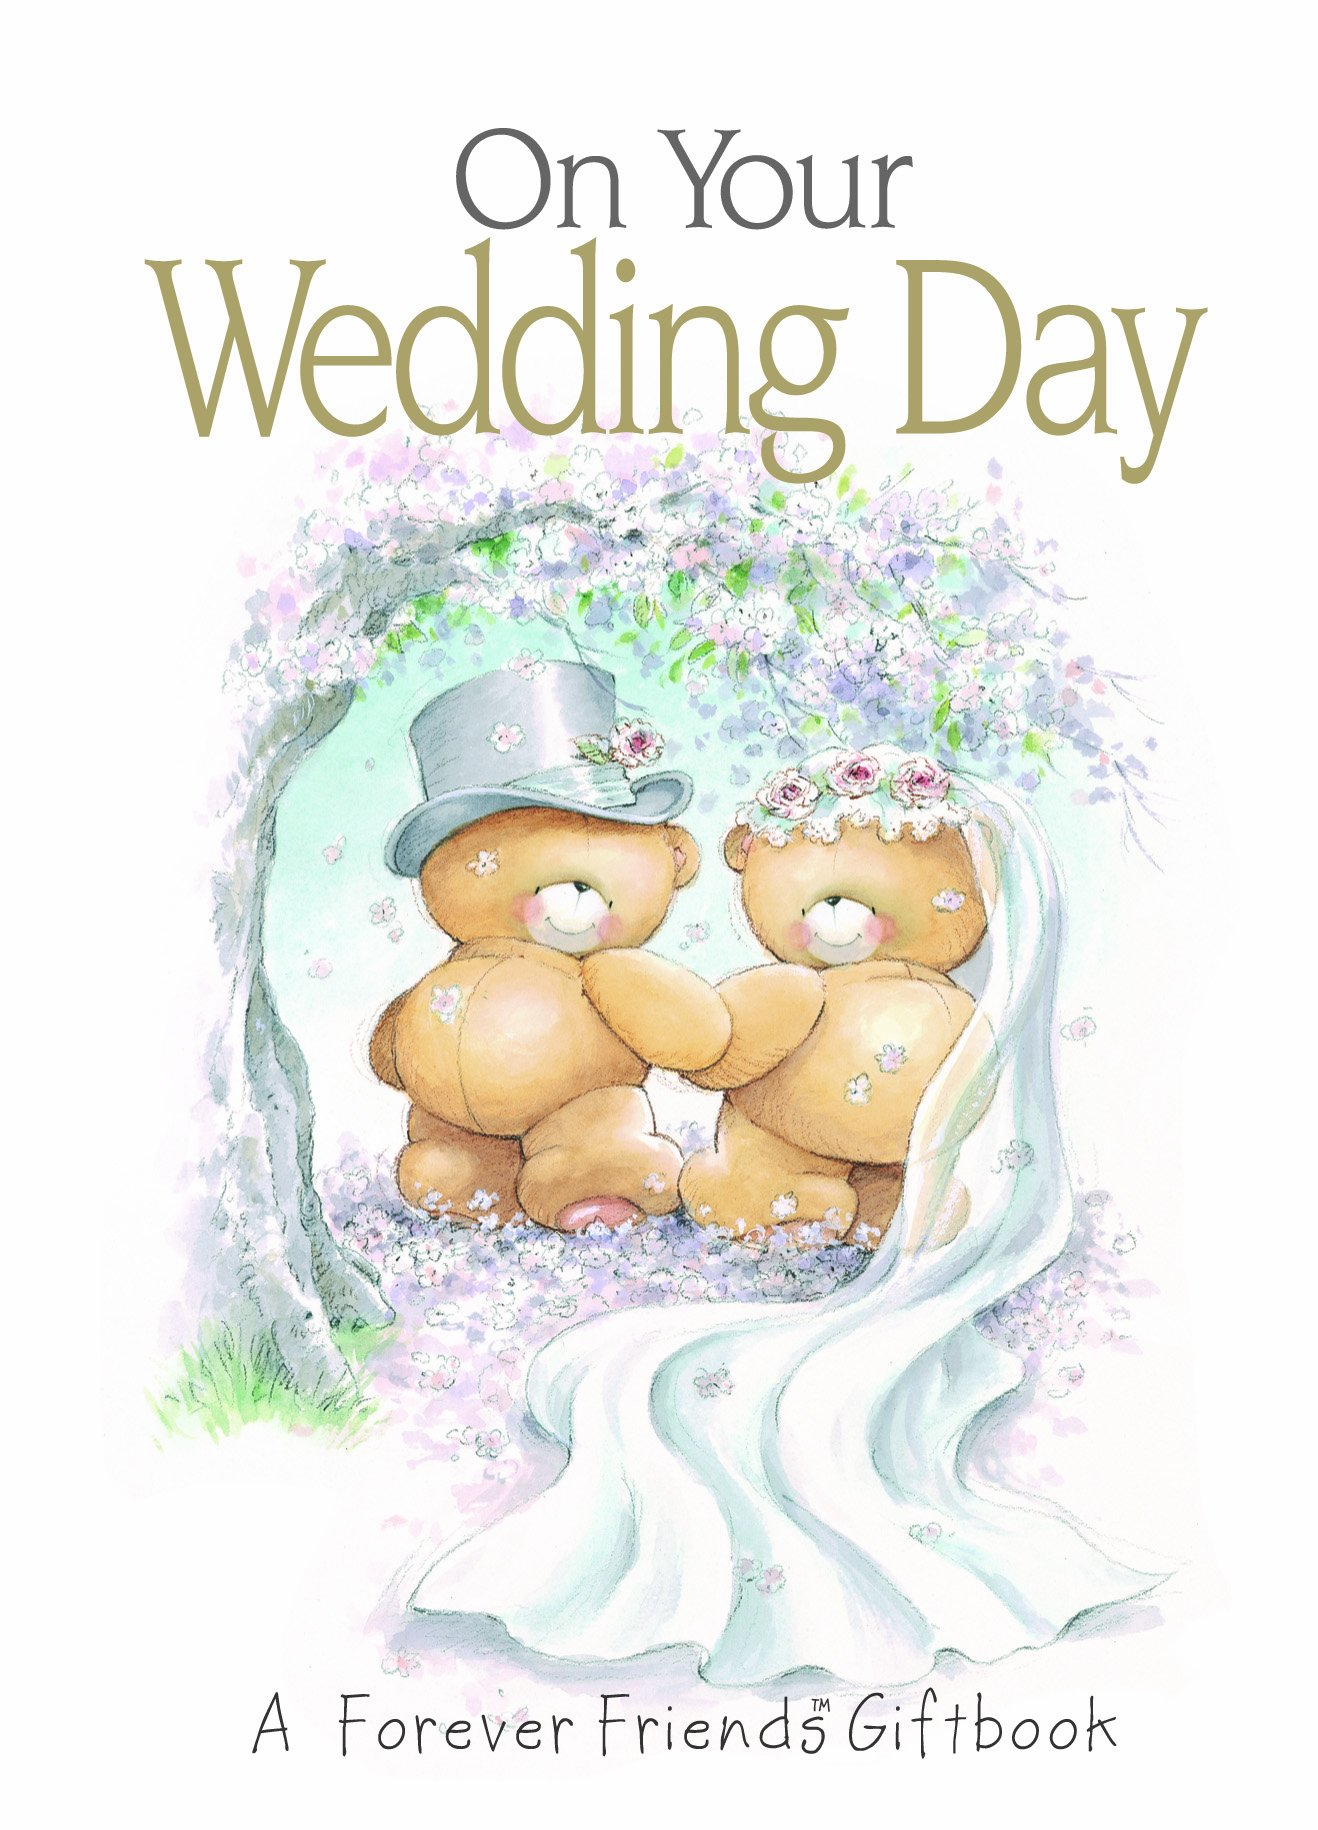 On Your Wedding Day: A Forever Friends Giftbook ebook